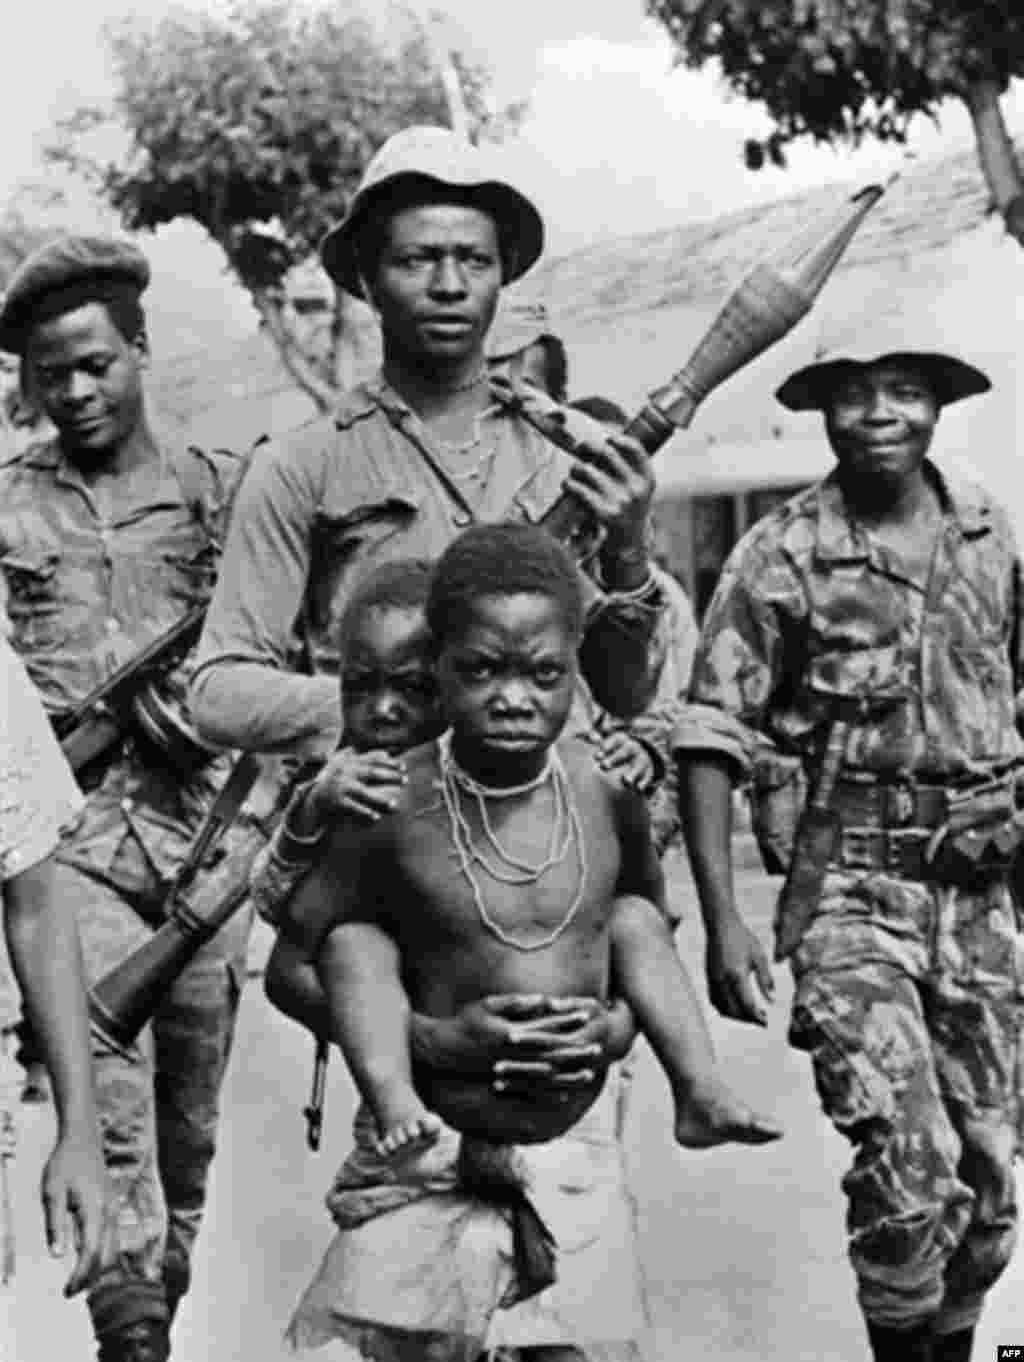 Marxist MPLA fighters in Angola in 1974 (AFP) - Angola gained its independence from Portugal in 1974 and was immediately plunged into civil war. The fighting was formally ended in 2002, making the 27-war Africa's longest-running conflict. An estimated 500,000 people were killed in the war, which was widely viewed as a Cold War surrogate conflict. Both the Soviet bloc and the United States provided military and other assistance to the factions involved.